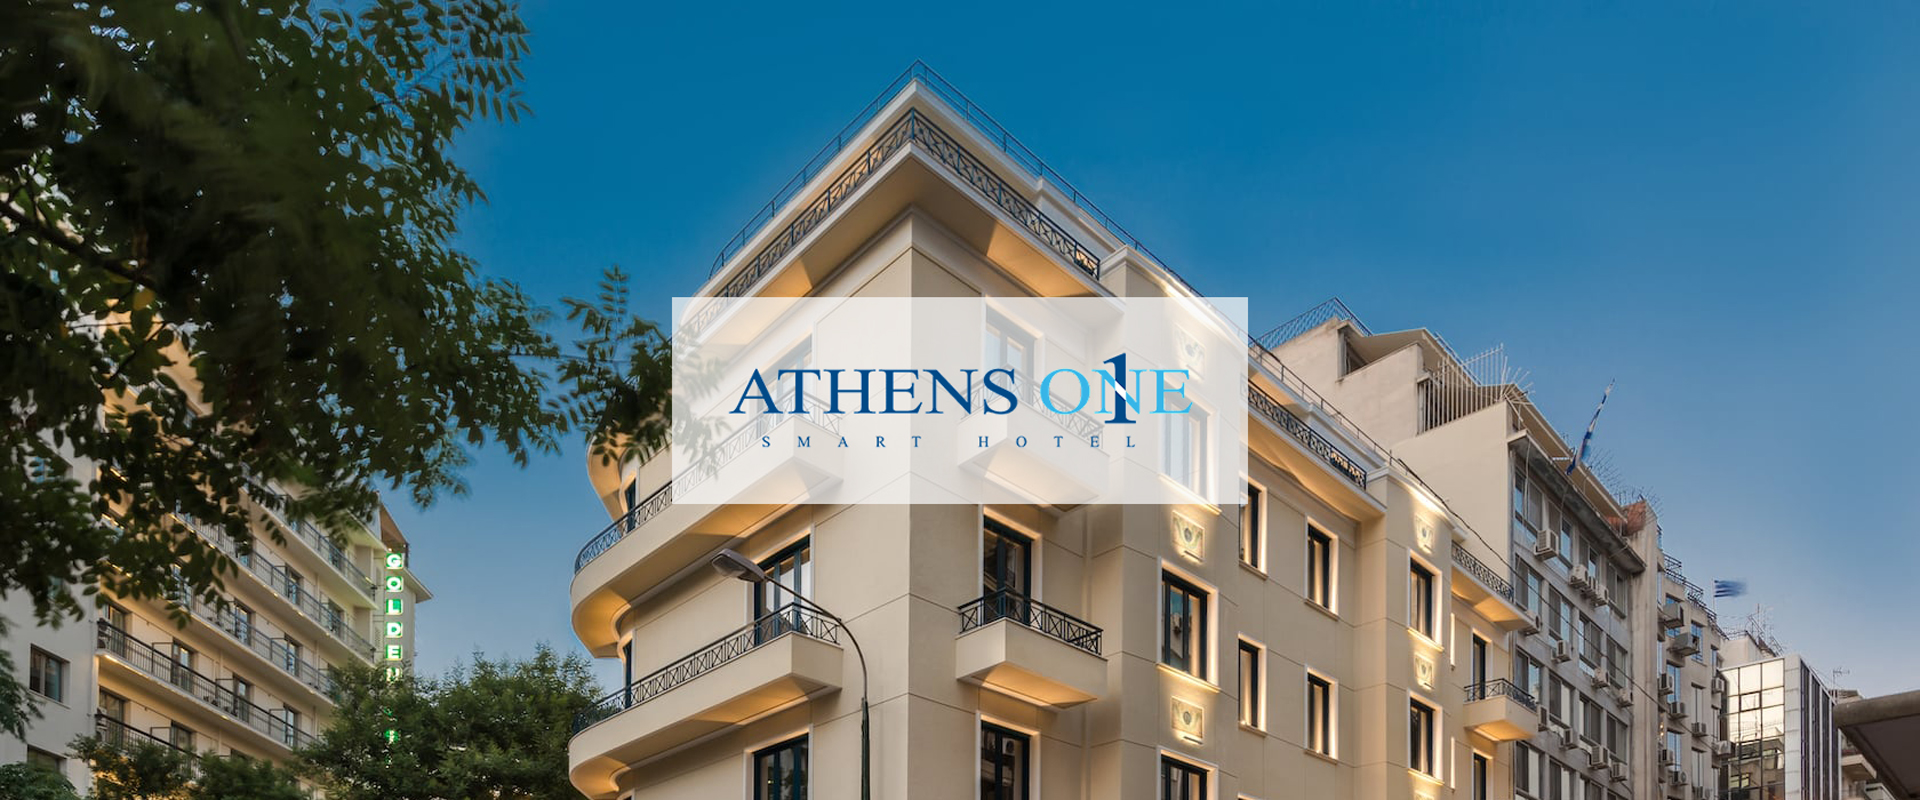 Athens-one-cover hotel resort video corporate